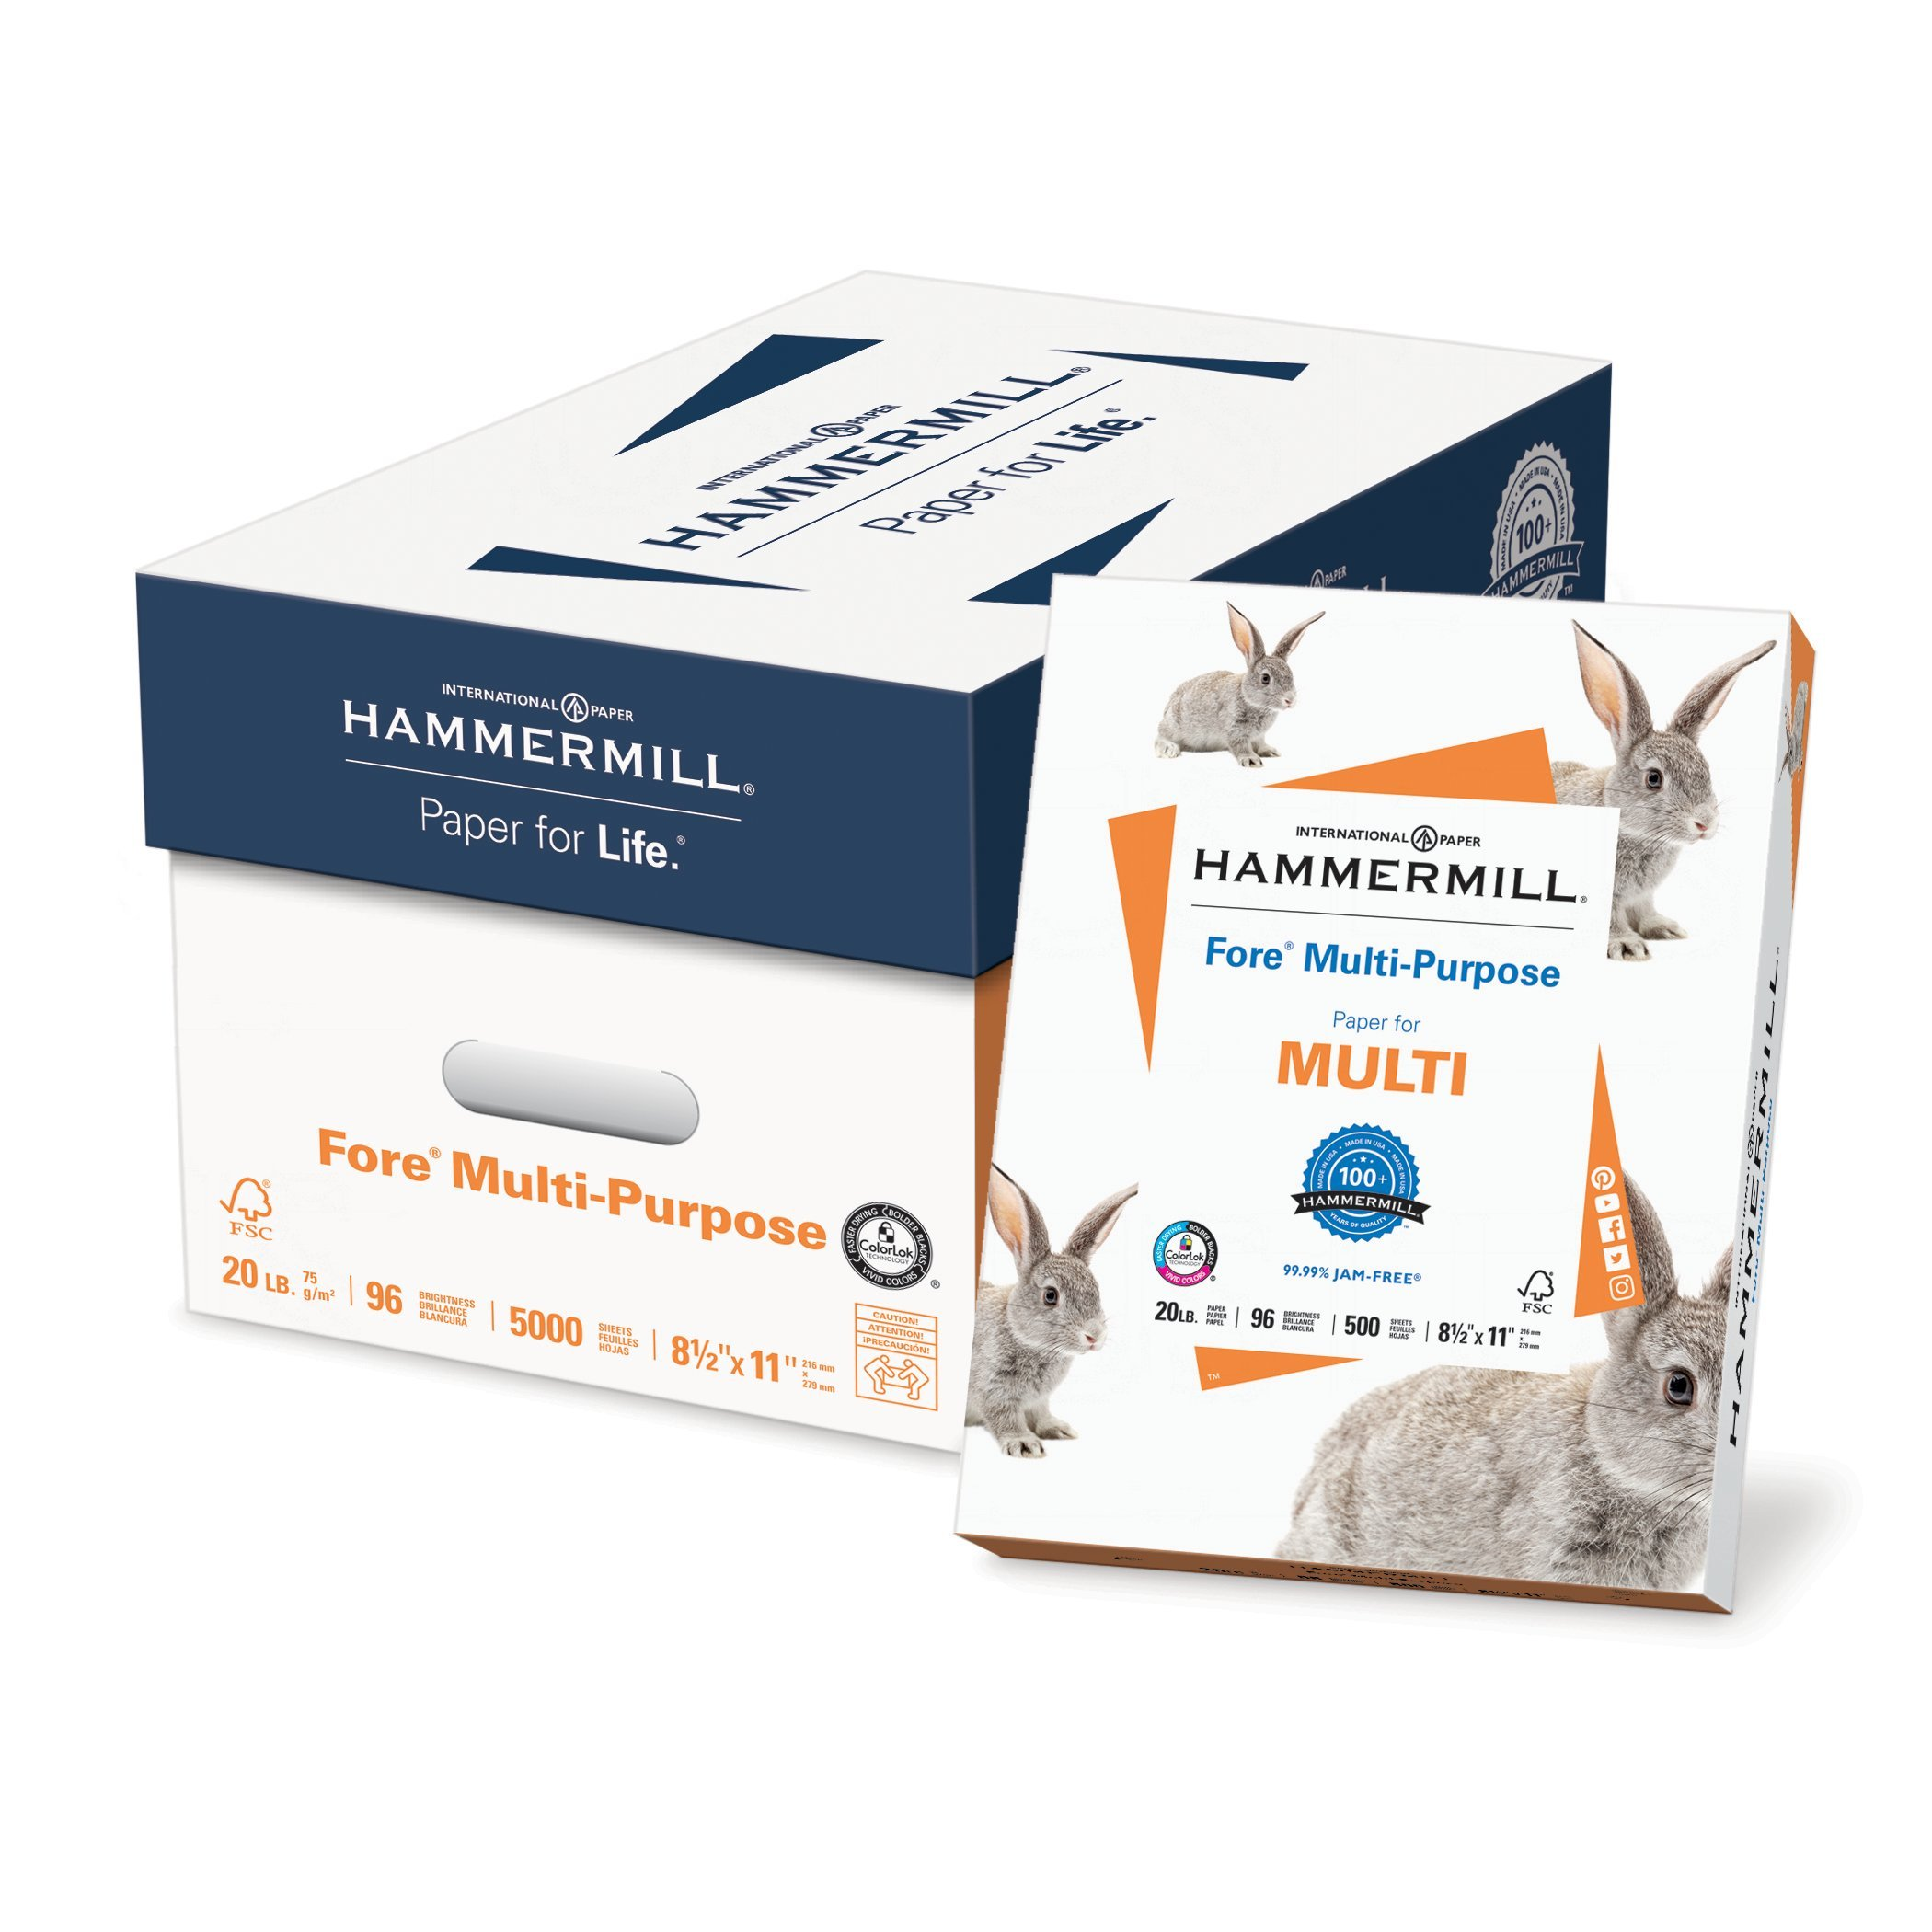 Hammermill Paper, Fore Multipurpose Paper, 8.5 x 11 Paper, Letter Size, 20lb Paper, 96 Bright, 10 Reams / 5,000 Sheets (103267C) Acid Free Paper by Hammermill